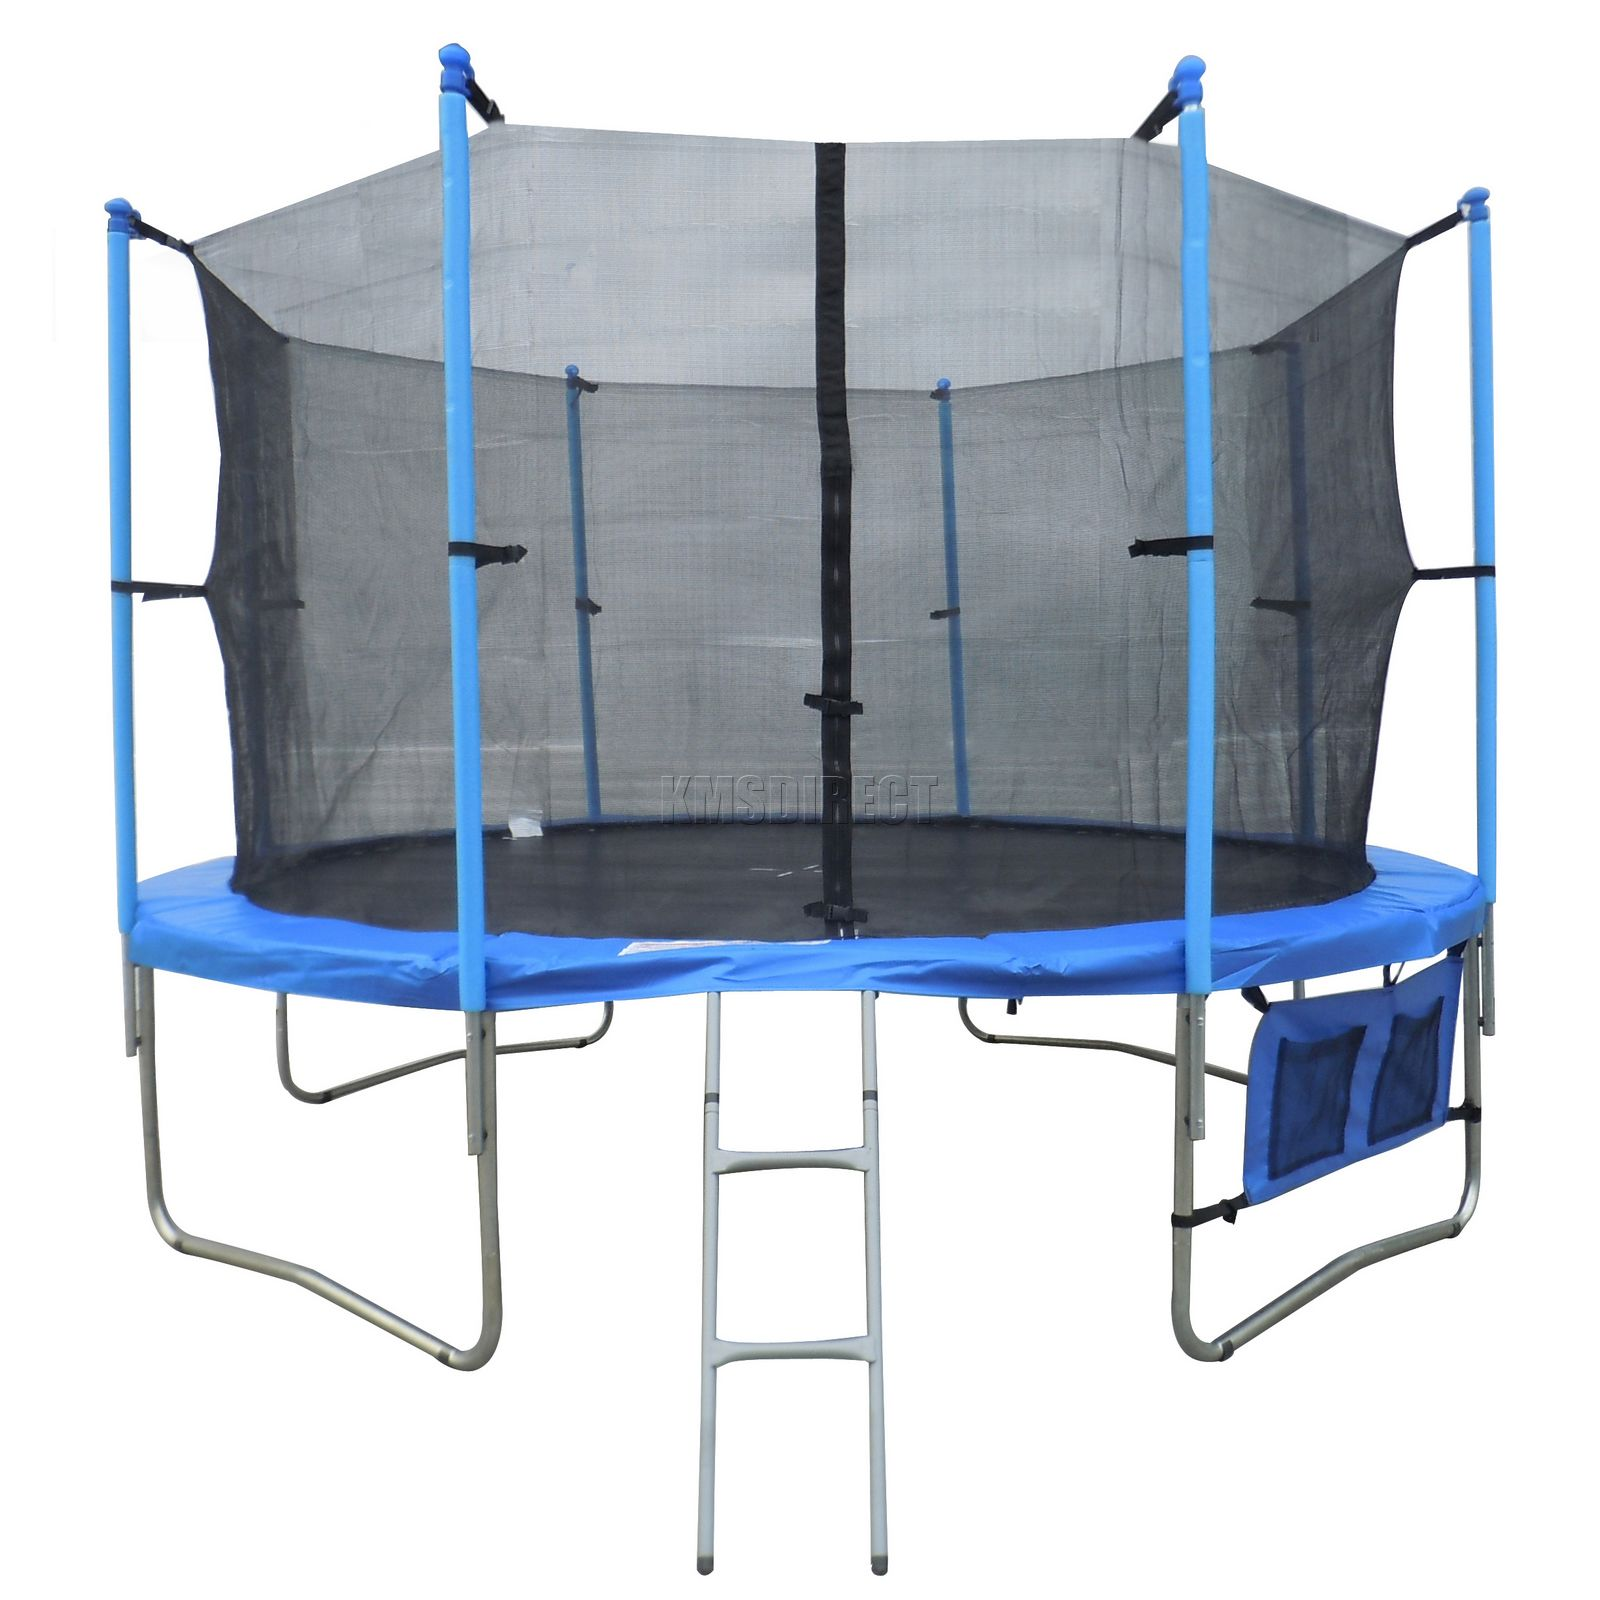 New 14ft Trampoline Combo Bounce Jump Safety Enclosure Net: Trampoline With Safety Enclosure Net Ladder Rain Cover 8FT